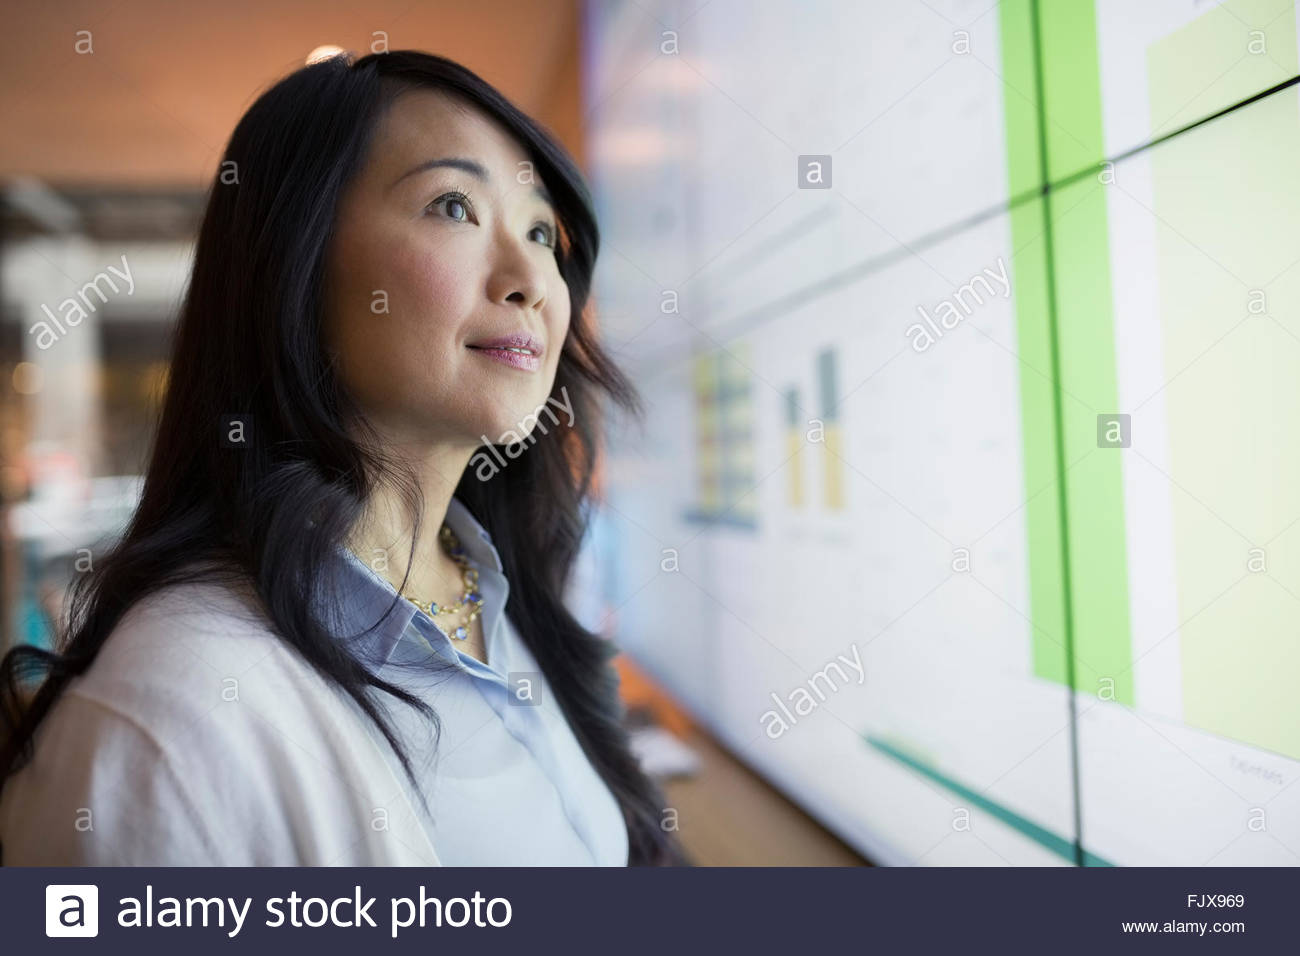 Curious businesswoman looking up at projection screen - Stock Image